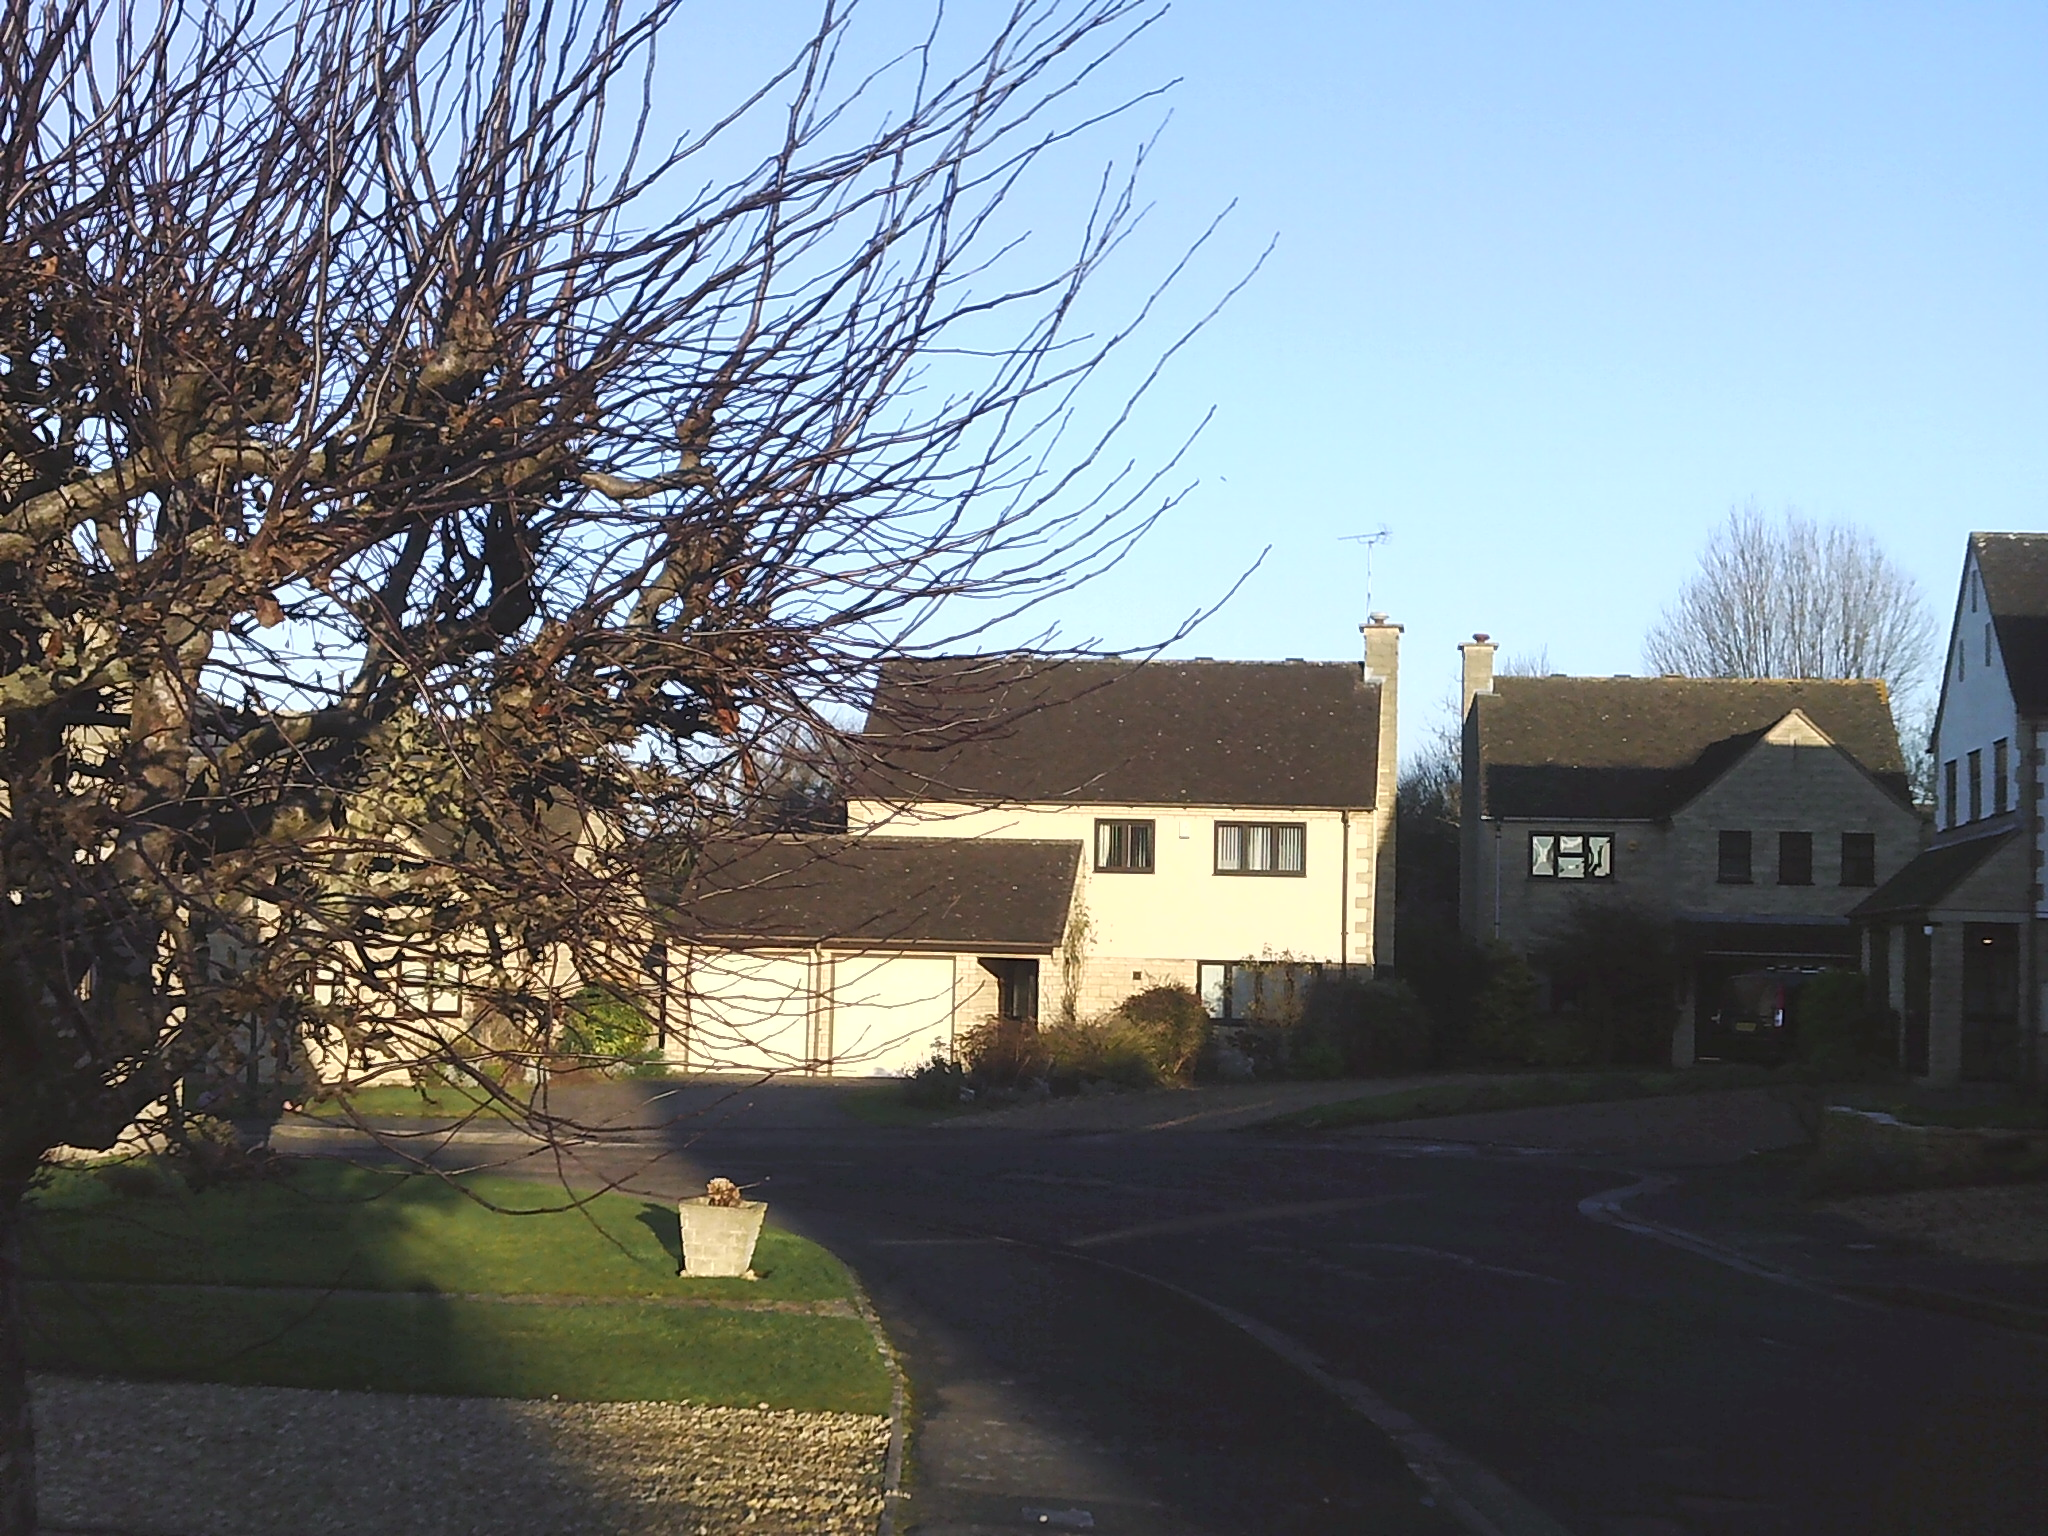 Houses in Willow Road Willersey